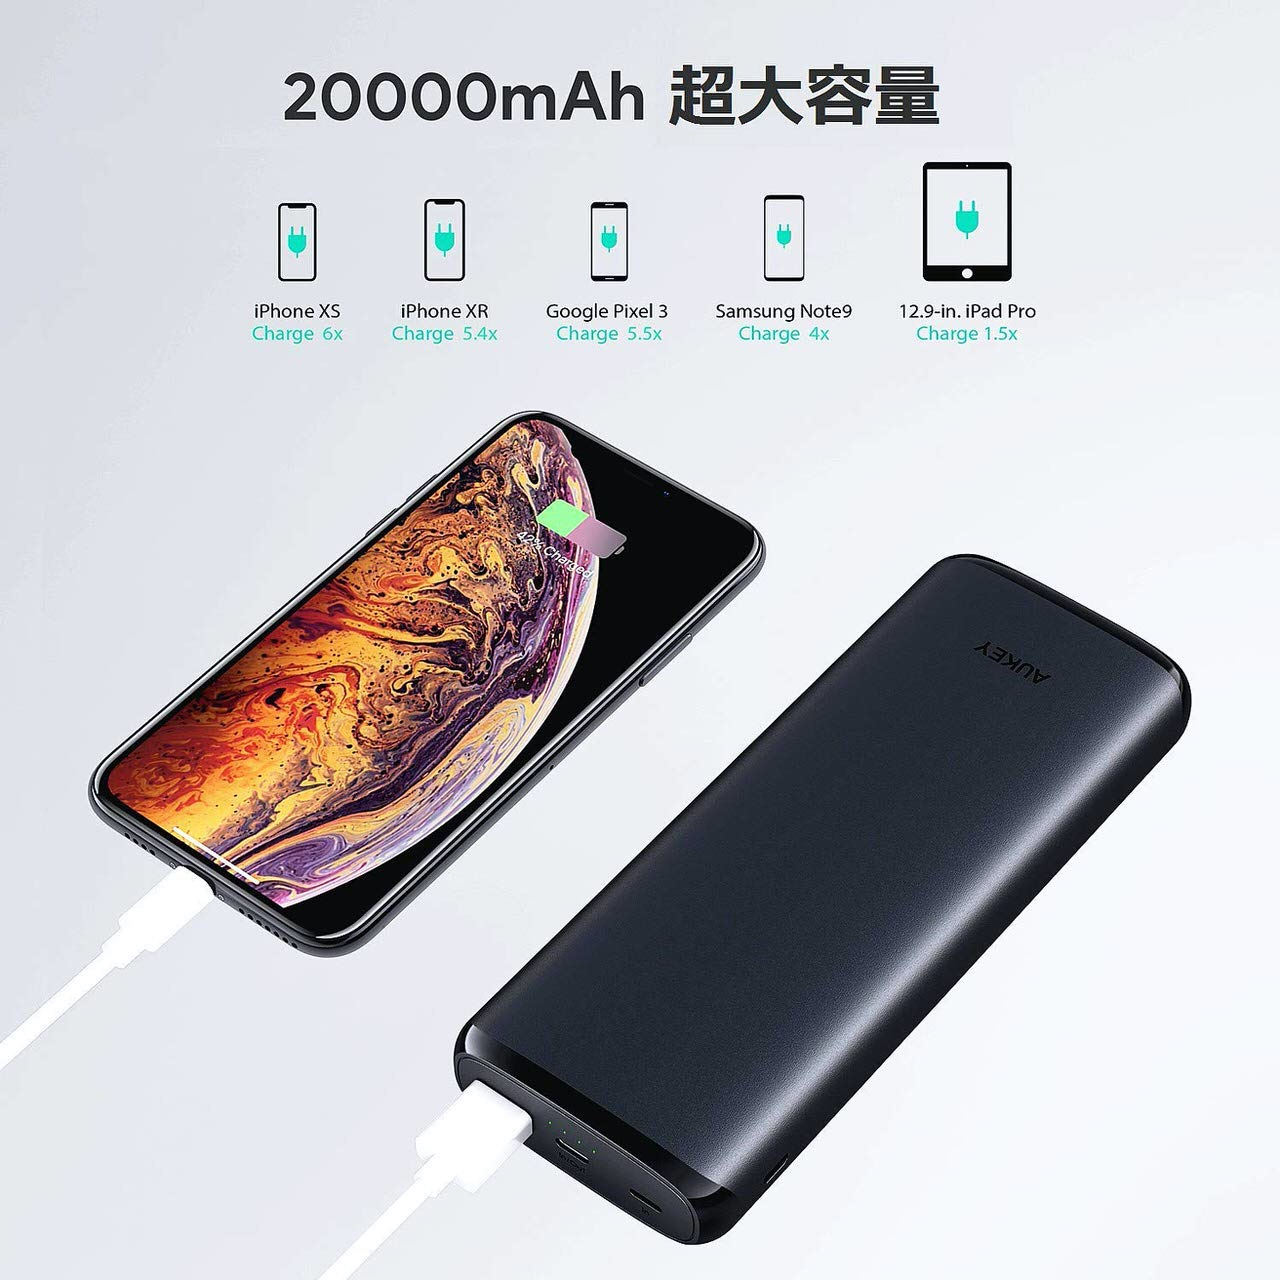 Quick Charge 3.0&Power Delivery 2.0対応の20,000mAhモバイルバッテリー「AUKEY PB-Y23」が41%オフの2,599円